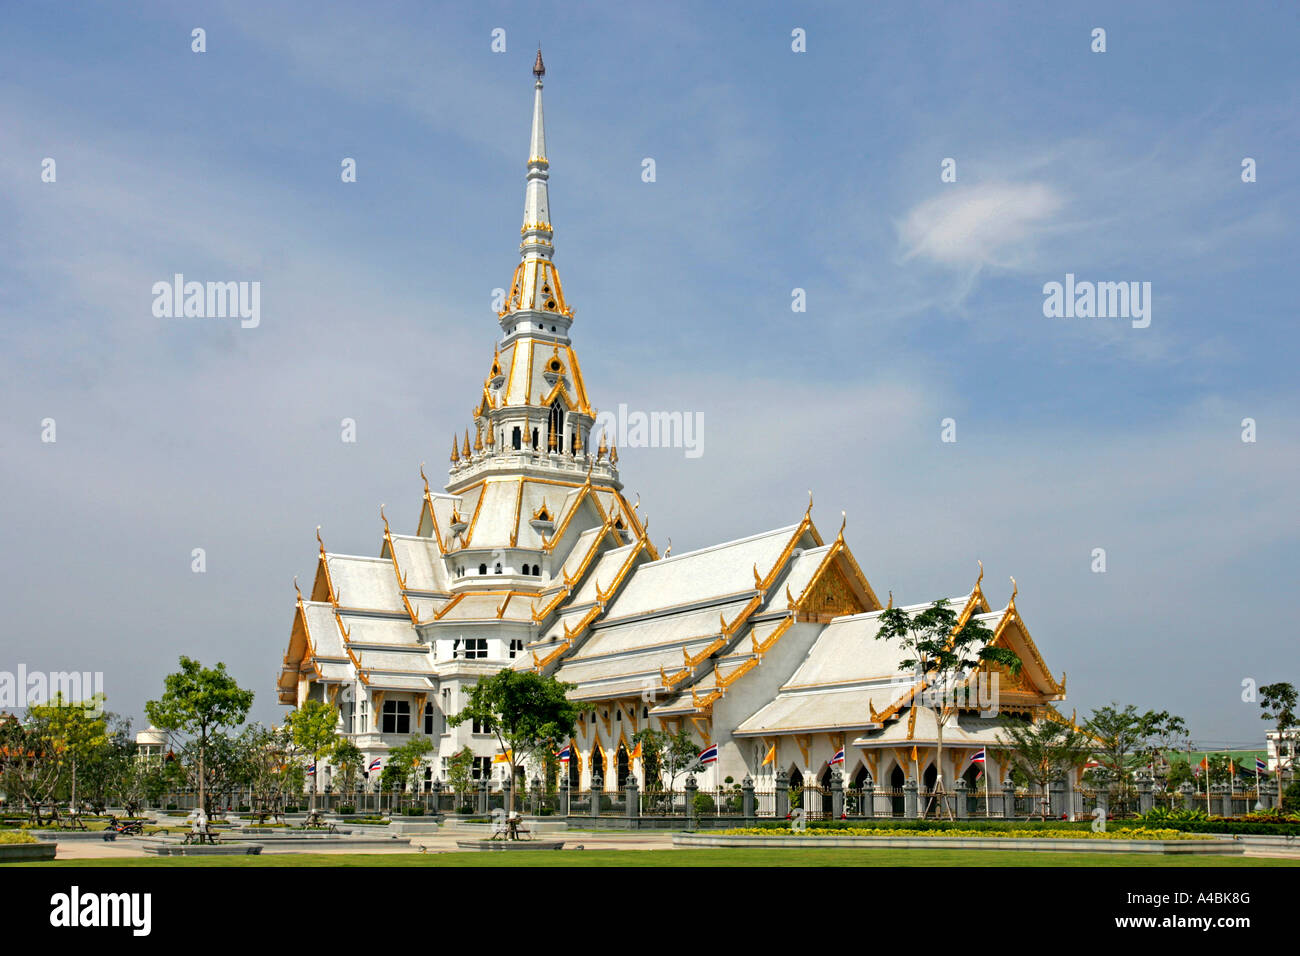 Temple Wat Chachoengsao, Thailand - Stock Image